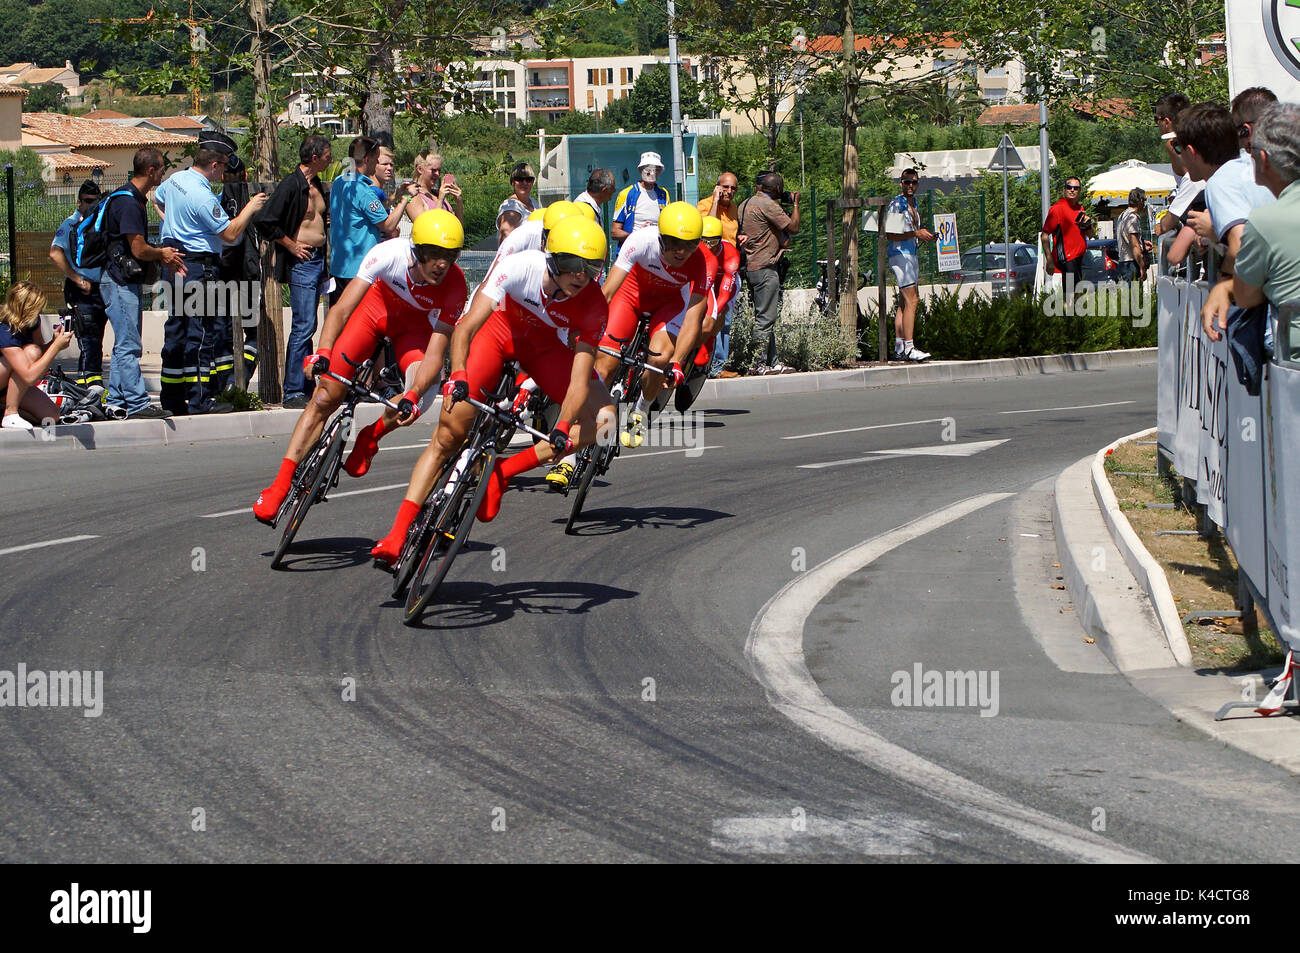 92108d300458 NICE - JULY 2ND   The TOUR 2013 (Tour de France) . COFIDIS Solutions Credits  Team during Nice Nice Stage 4 (25 km).